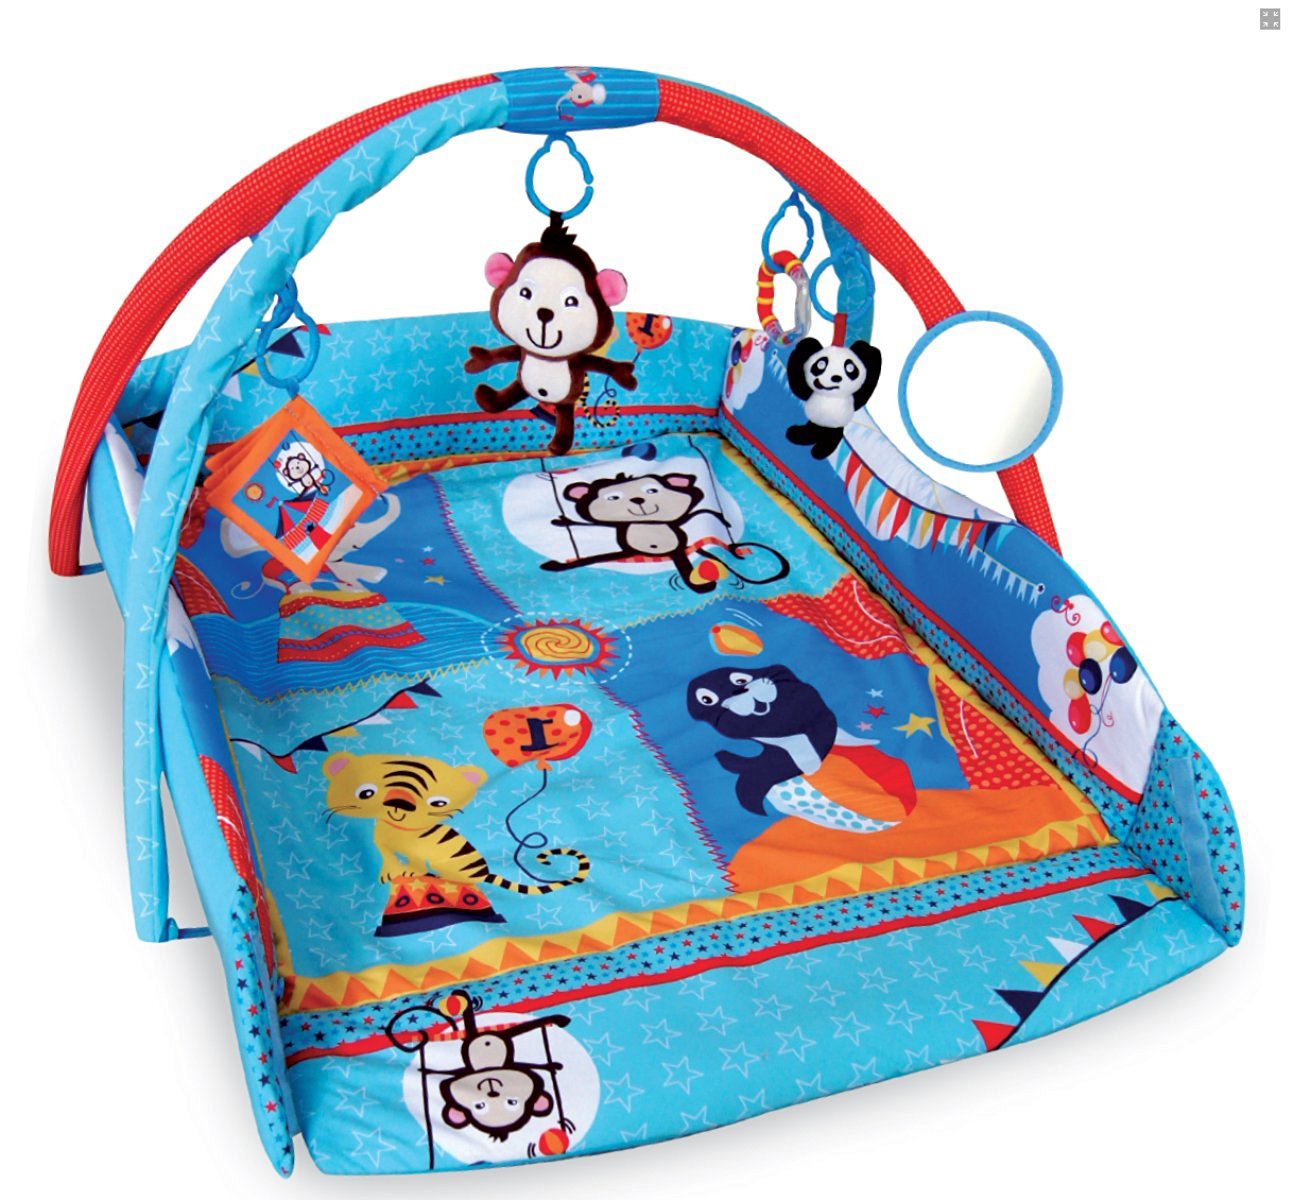 Bebe Style 4 In 1 X Large Musical Animal World Playmat